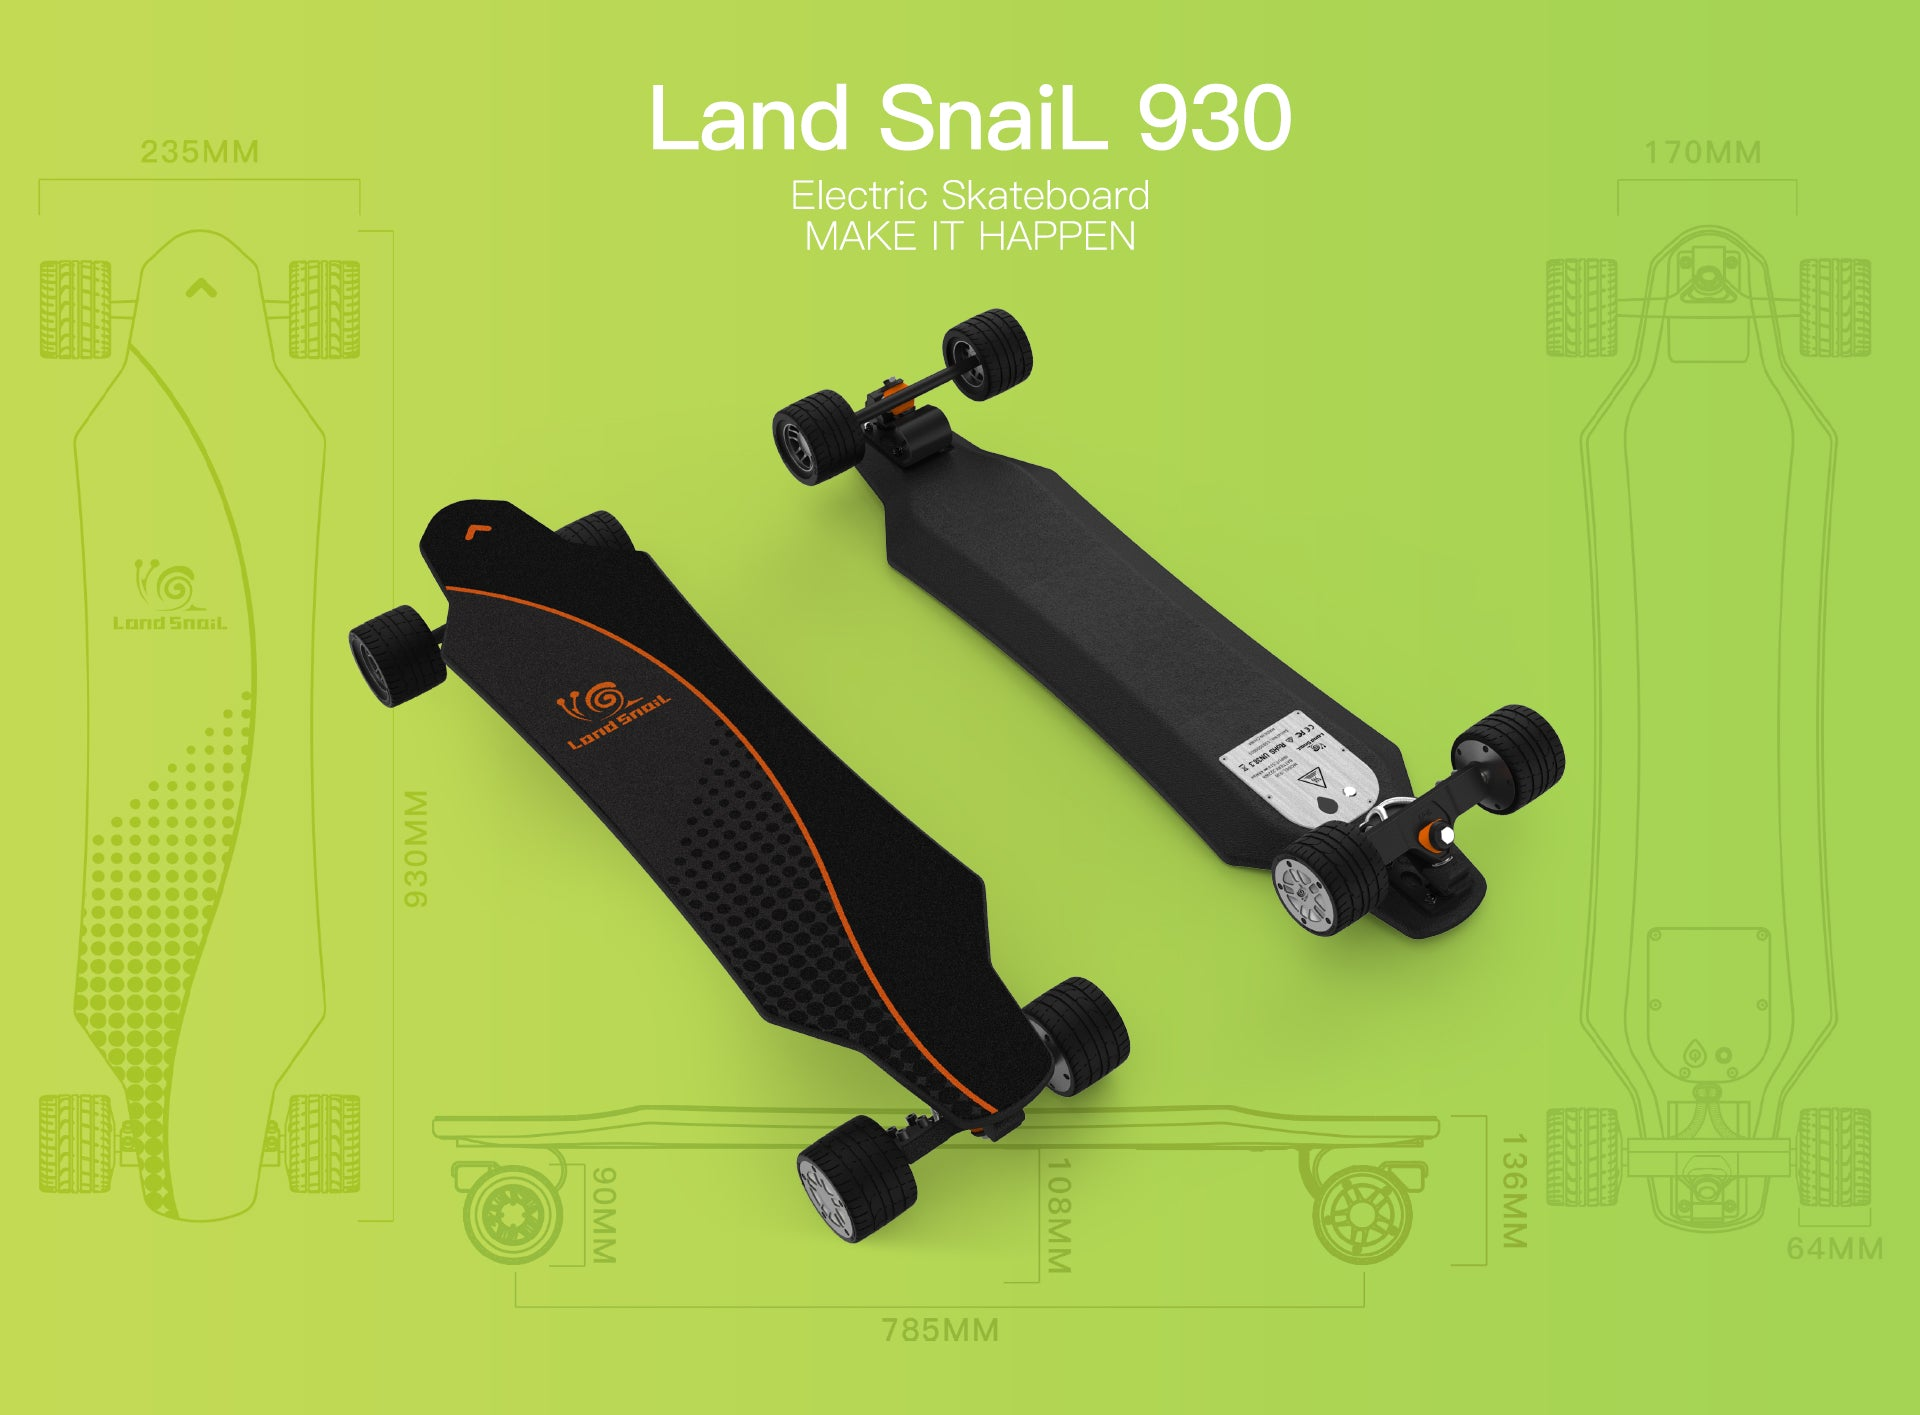 BrotherHobby Land SnaiL 930 Electric Skateboard - eRider.com.au